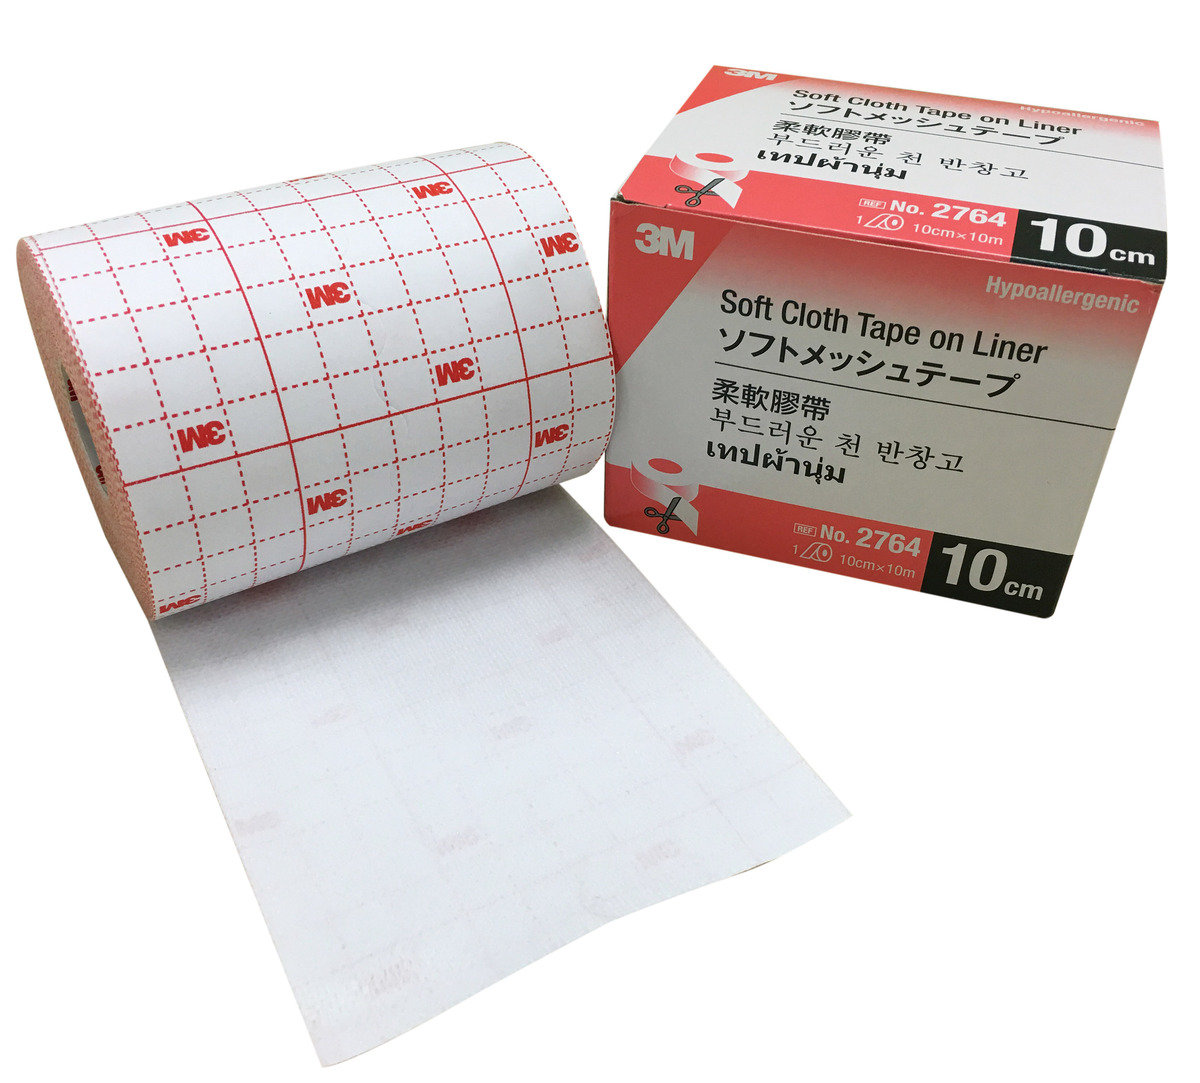 Soft Cloth on Liner Adhesive Dressing 4""